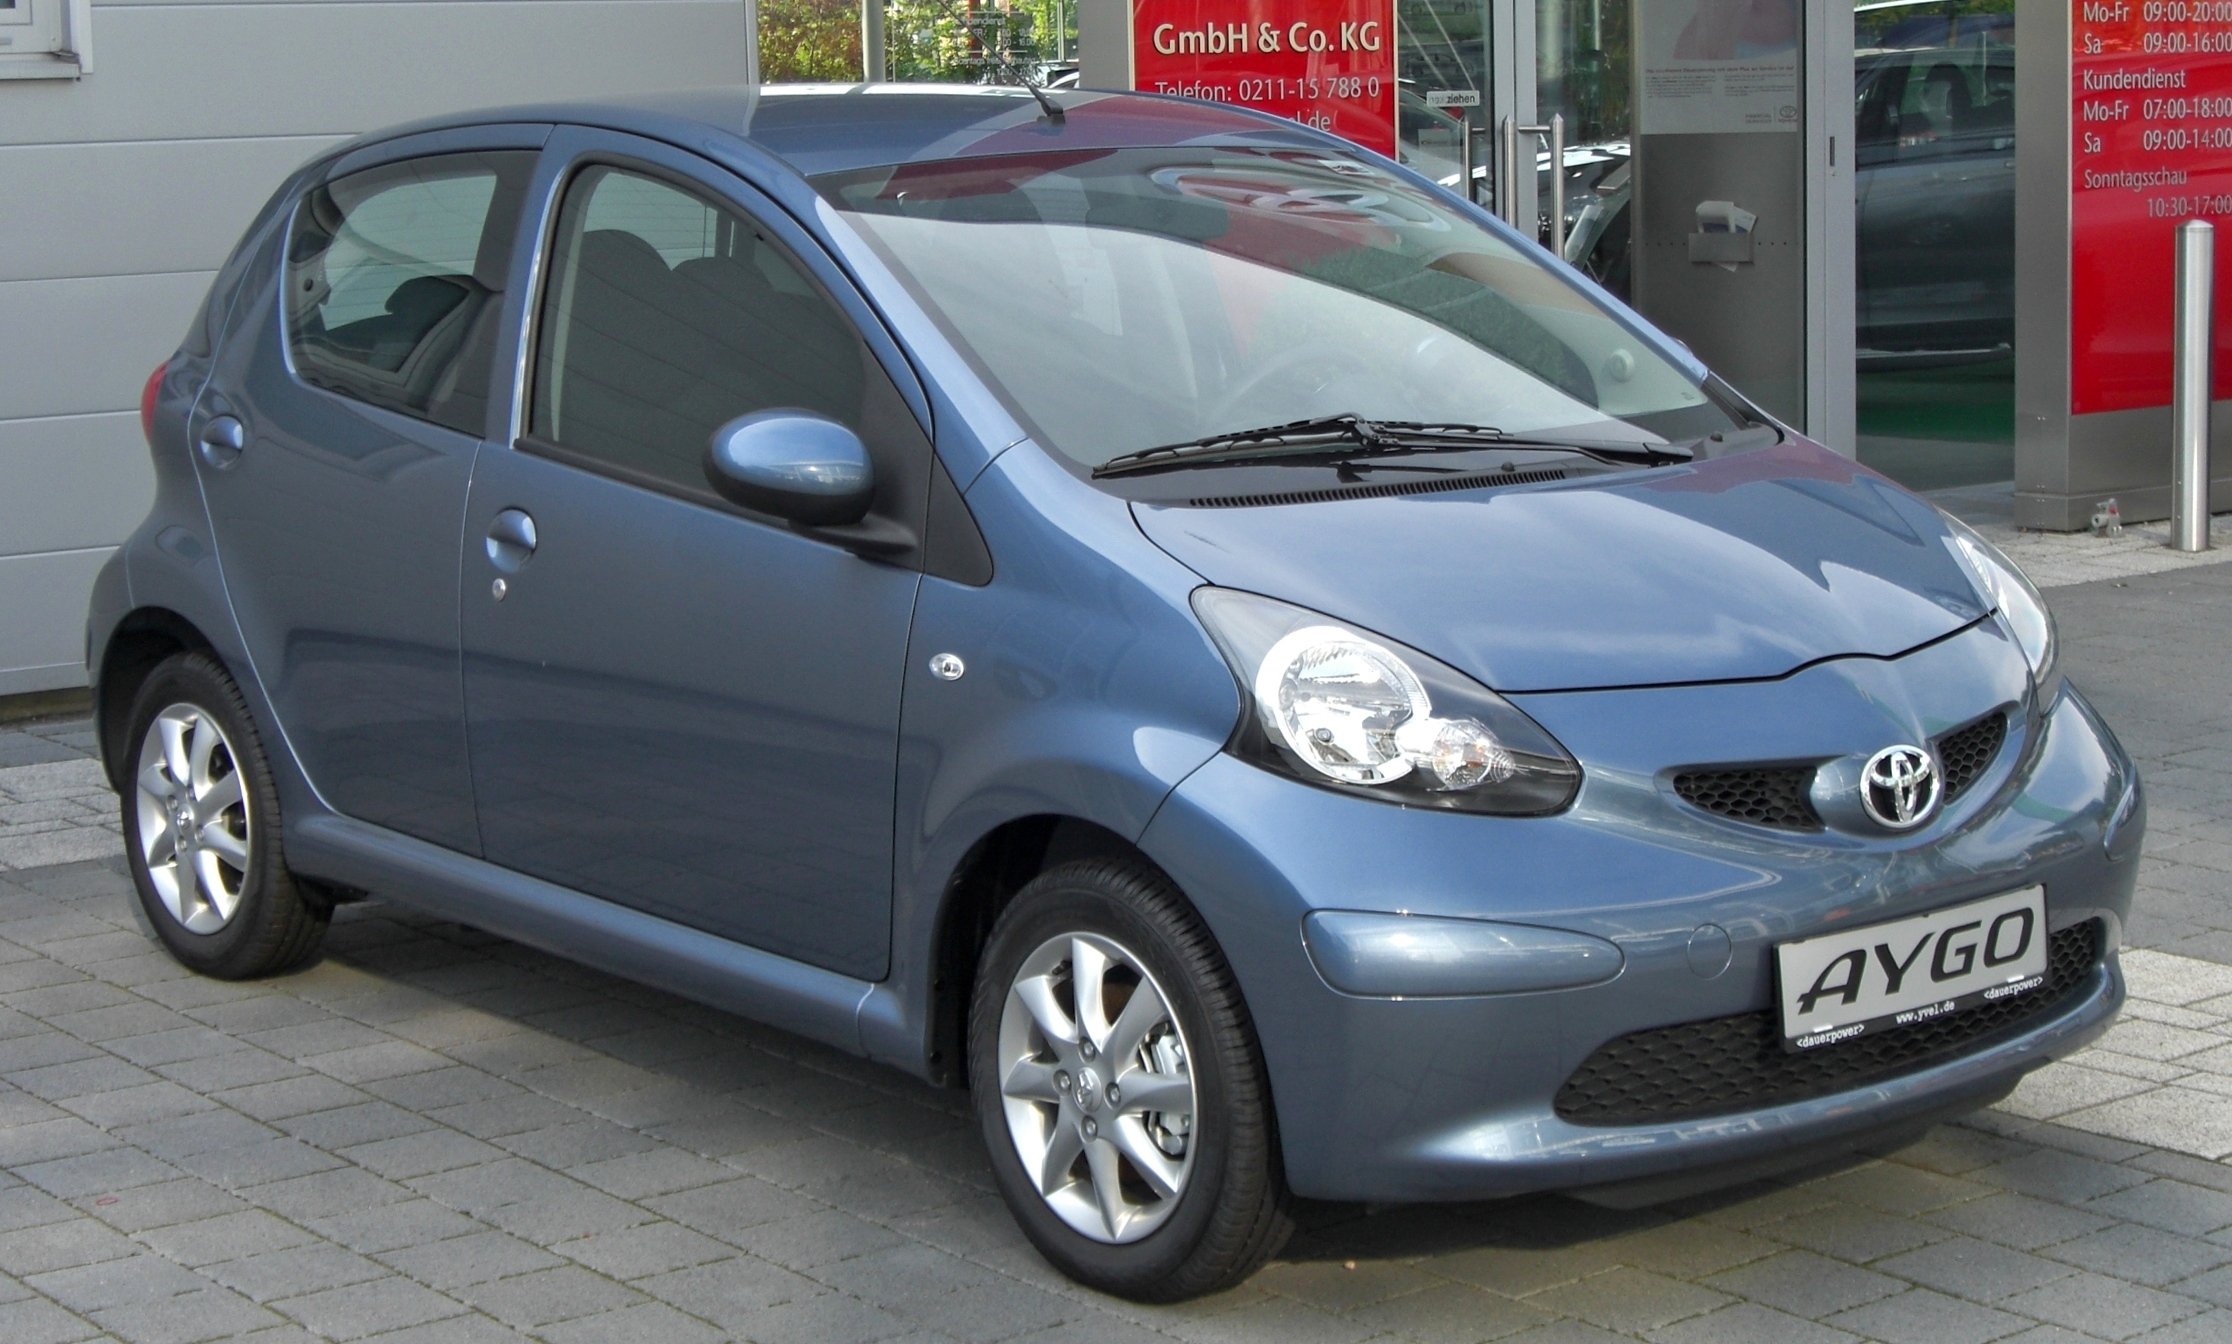 Toyota Aygo Blue Technical Details History Photos On